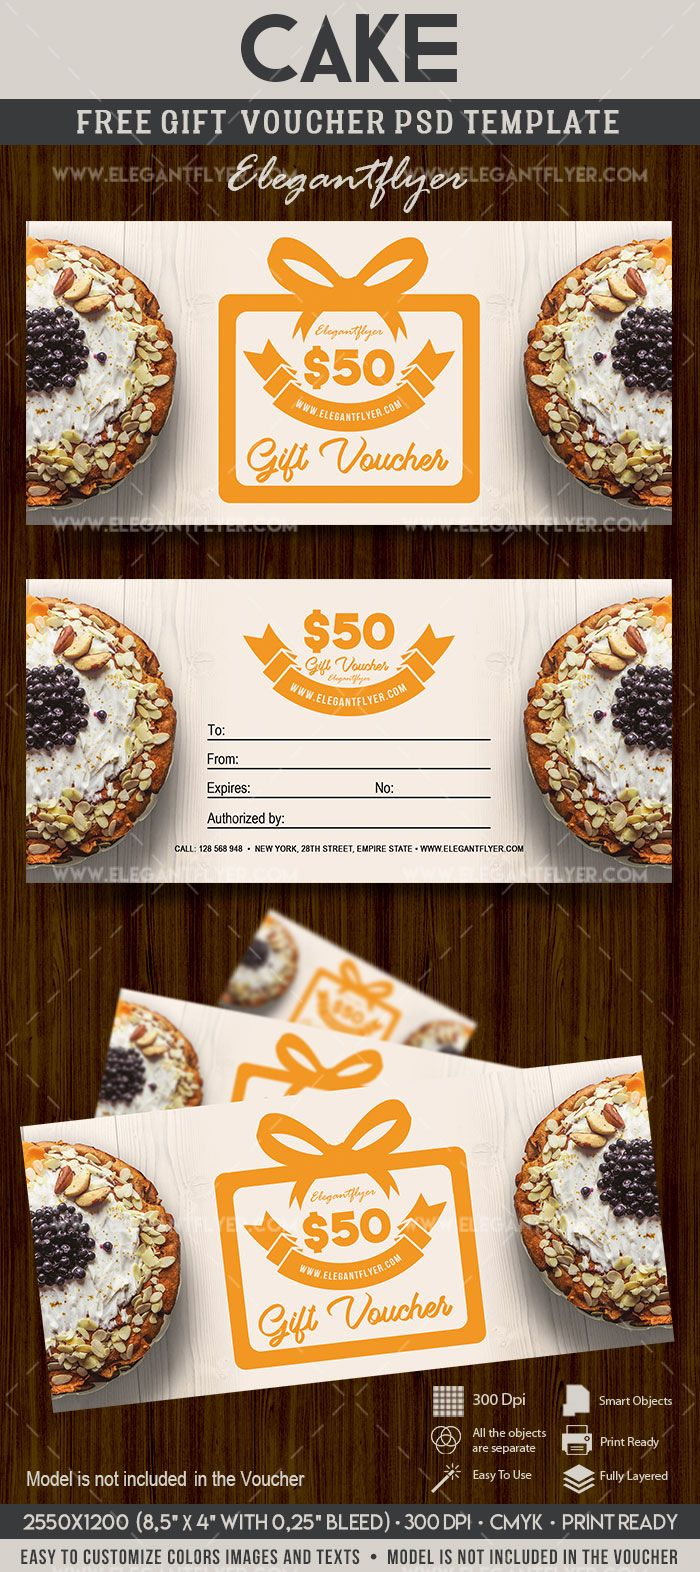 Cake free gift certificate psd template free gift certificate cake free gift certificate psd template free gift certificate template gift certificate template and psd templates yelopaper Images